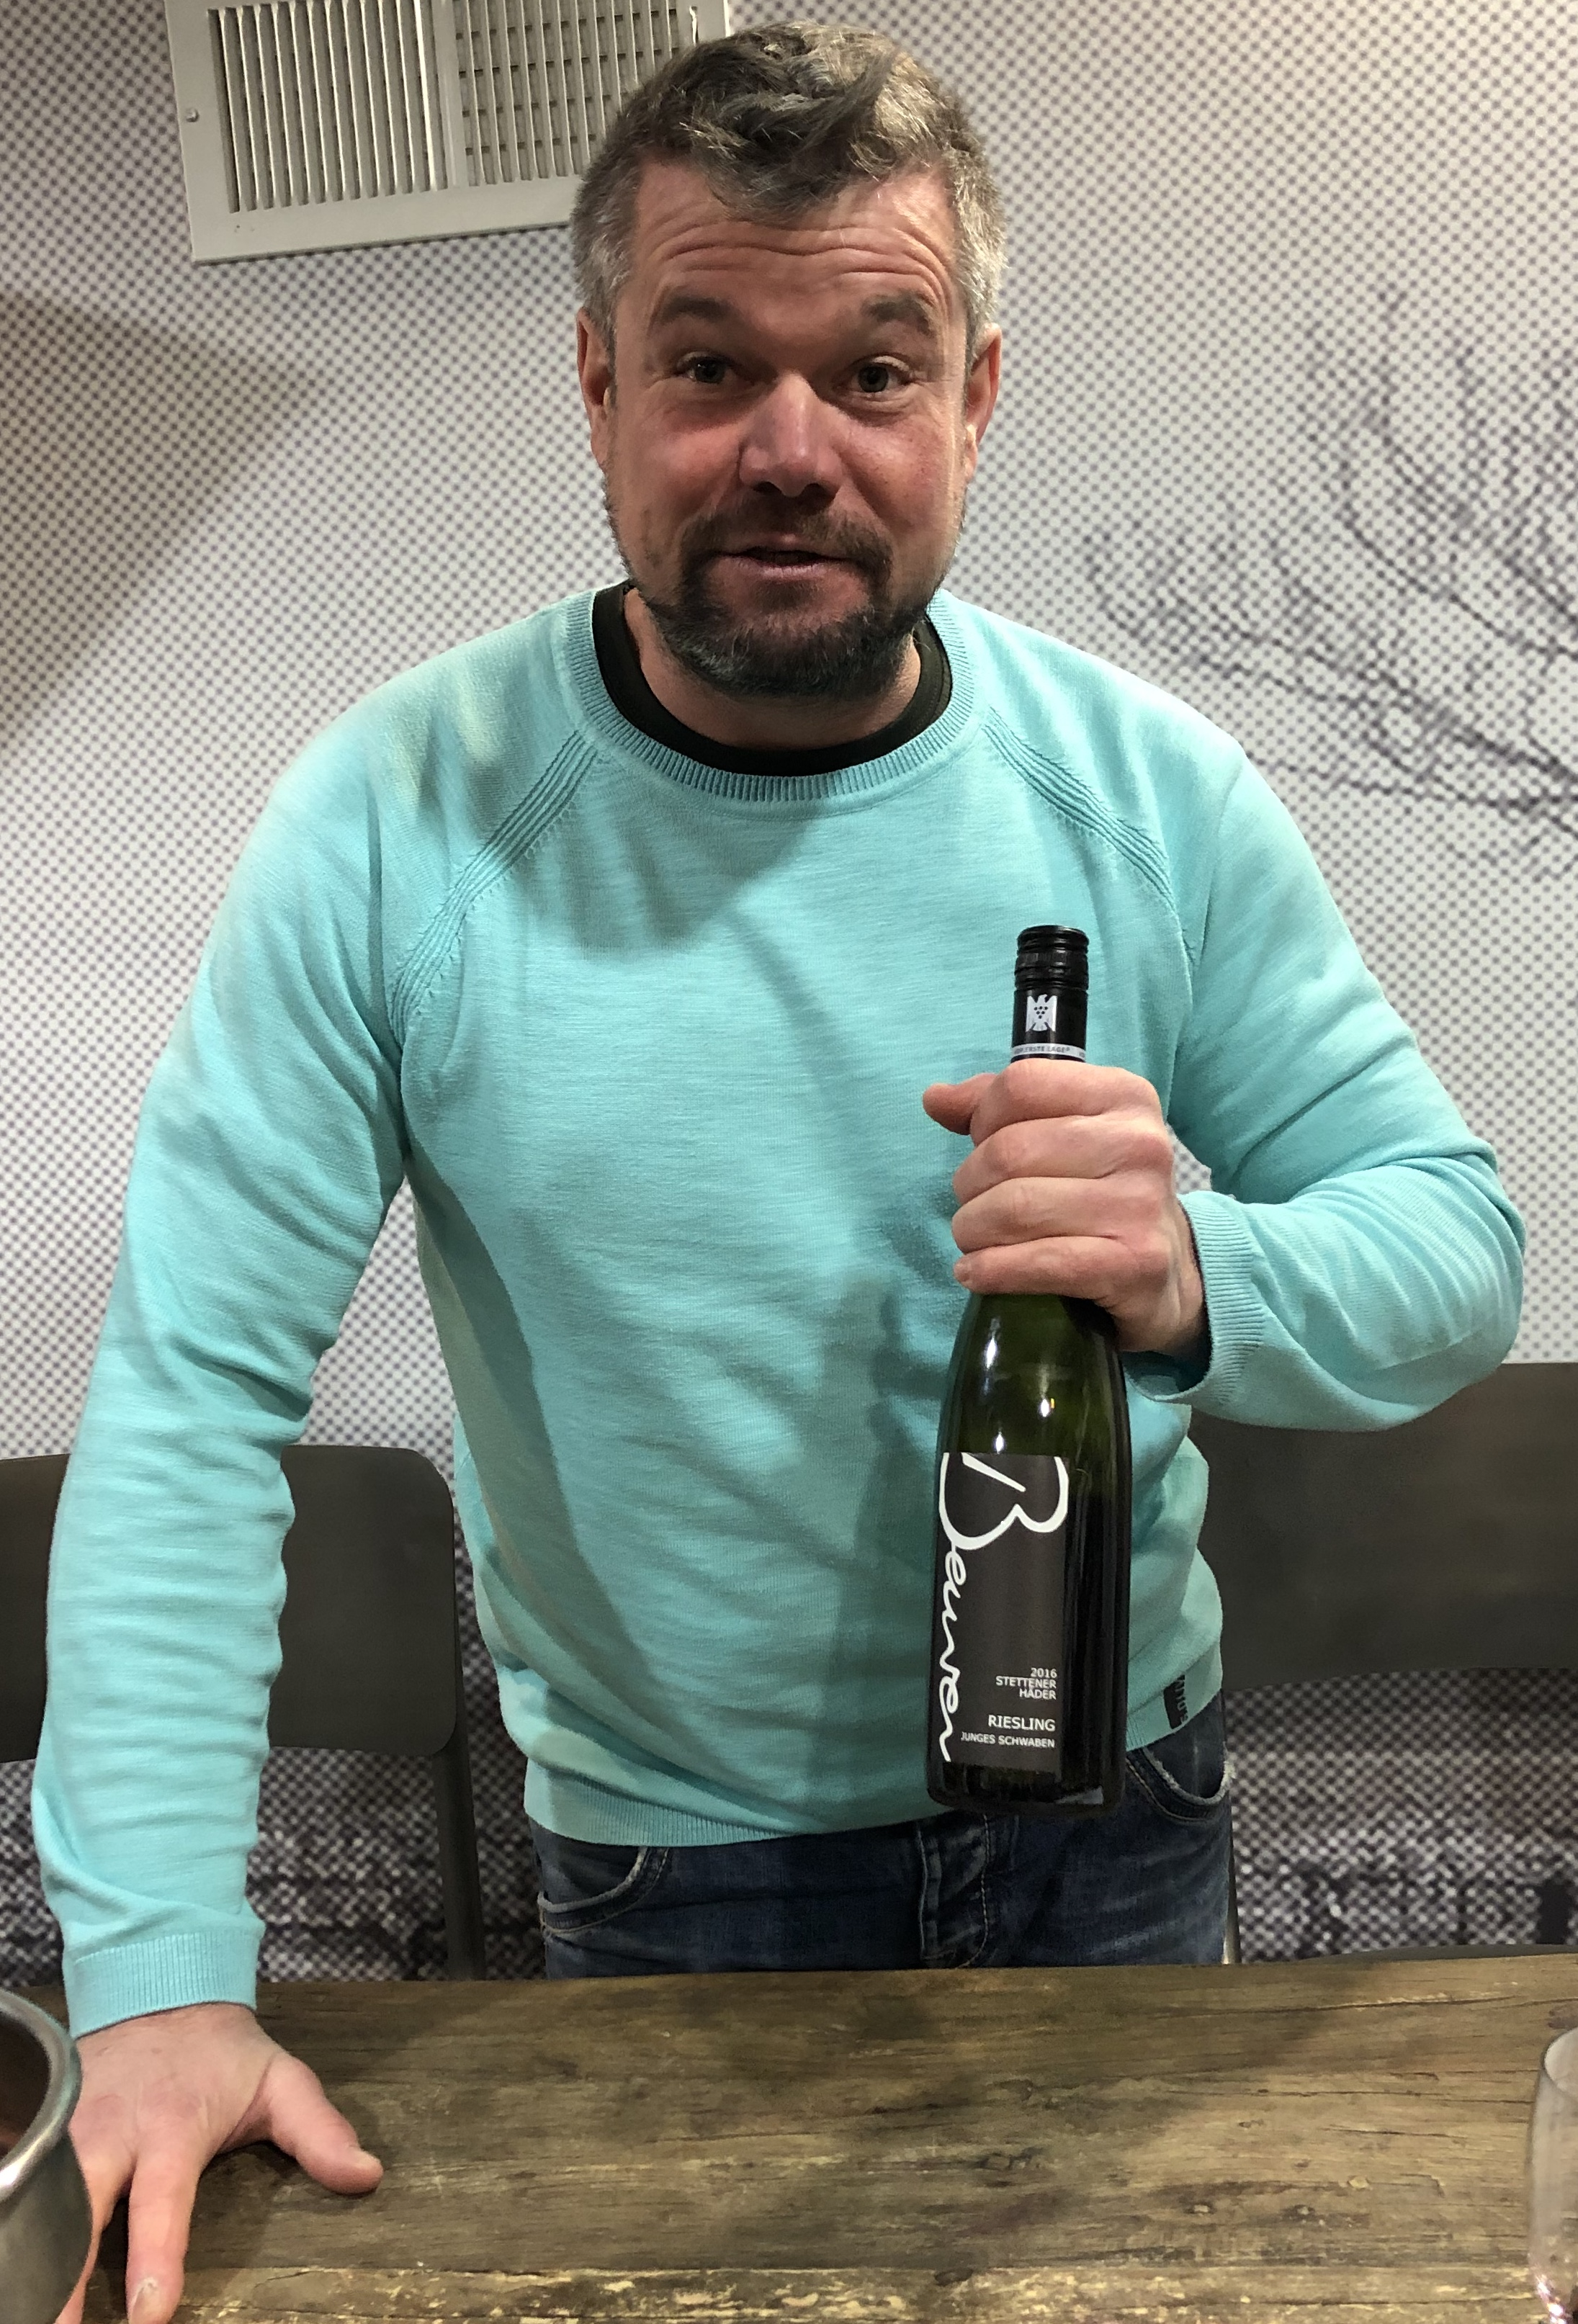 Jochen Beurer Reimagines the Future of Württemberg Wine - A surge of energy and ideas, far more sensitive farming and winemaking, and above all a sense of local pride over outside prejudice are bearing out this Remstal renegade's pioneering vision for the region. March 2019.